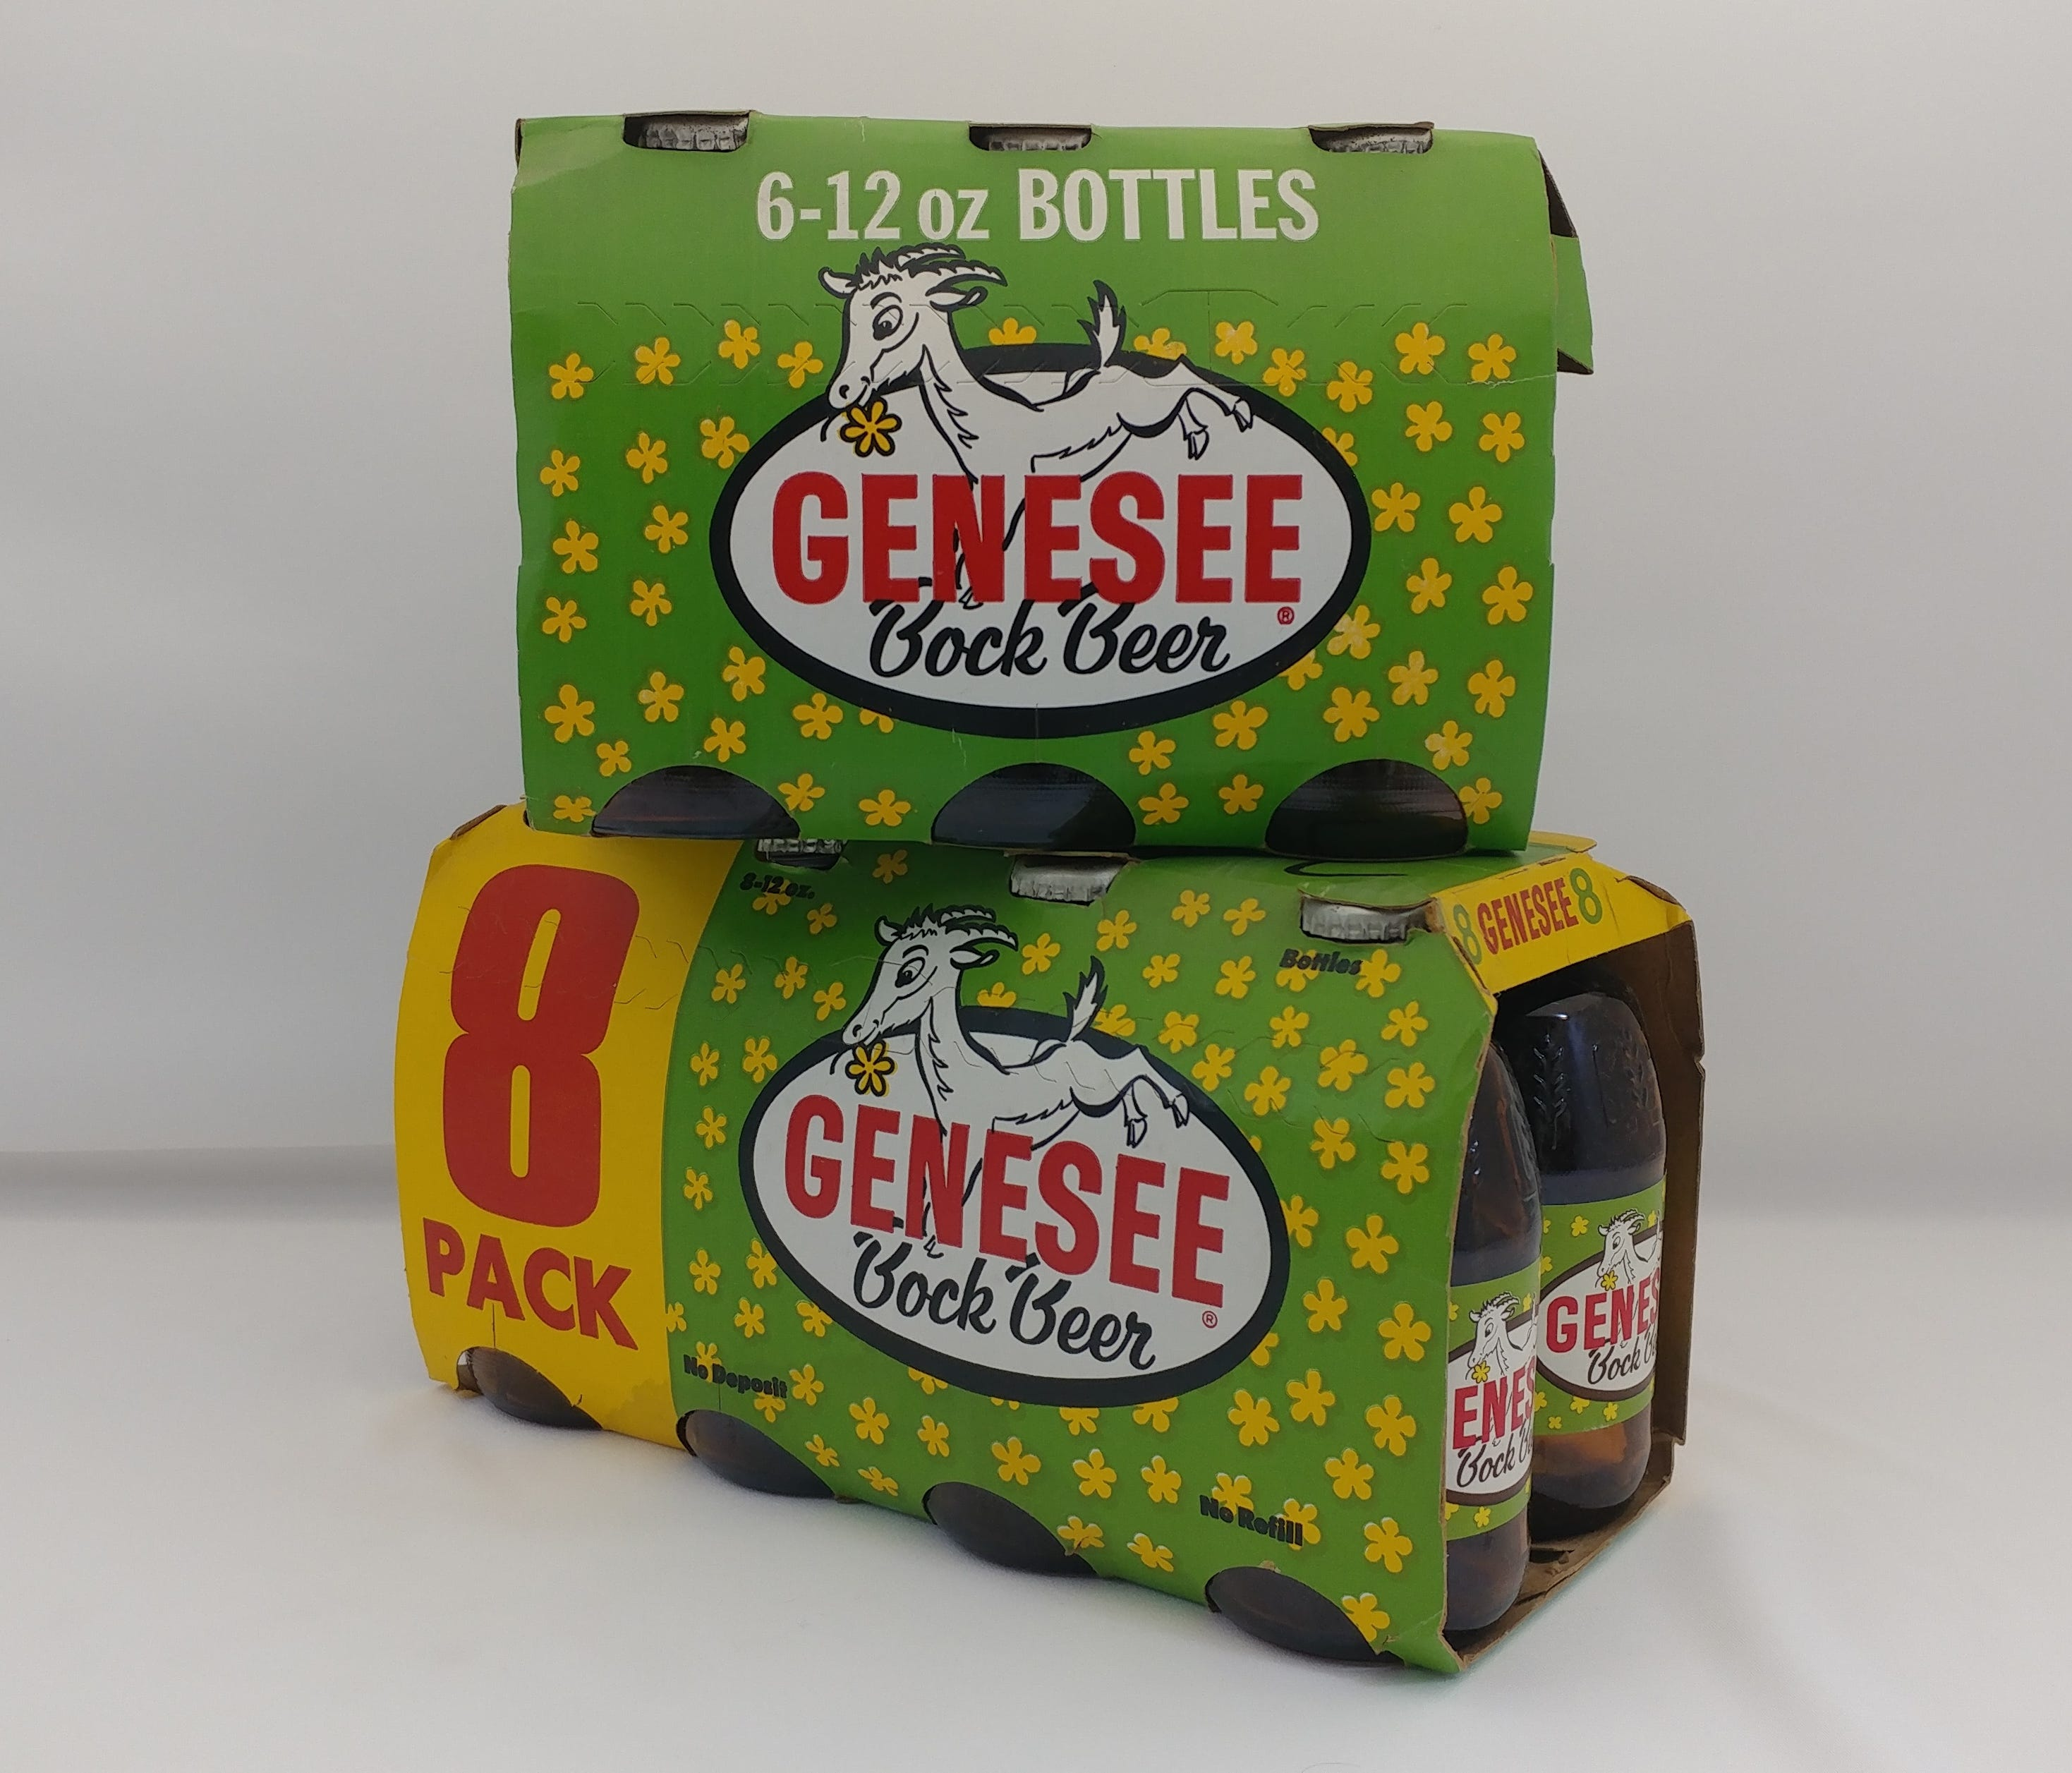 Genesee Bock packages and bottles from the late 1970s and the early 1980s.